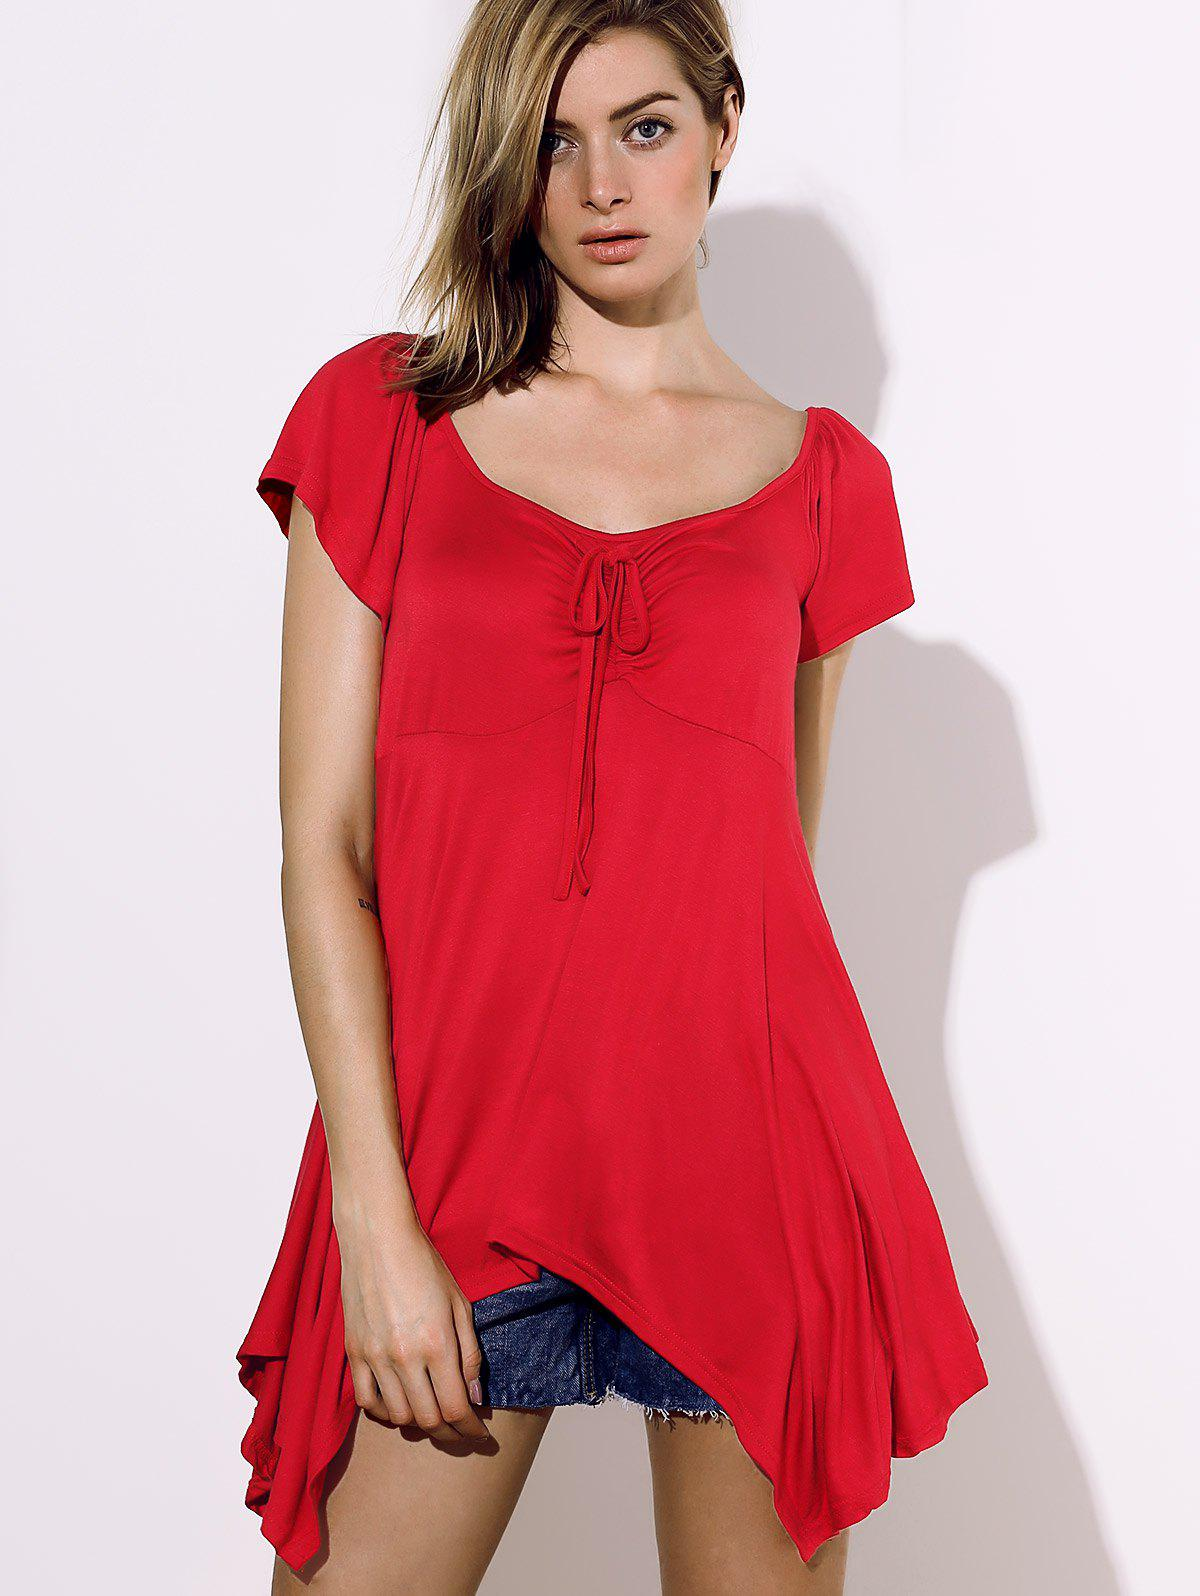 Stylish Square Neck Short Sleeve Asymmetrical Solid Color Women's Blouse